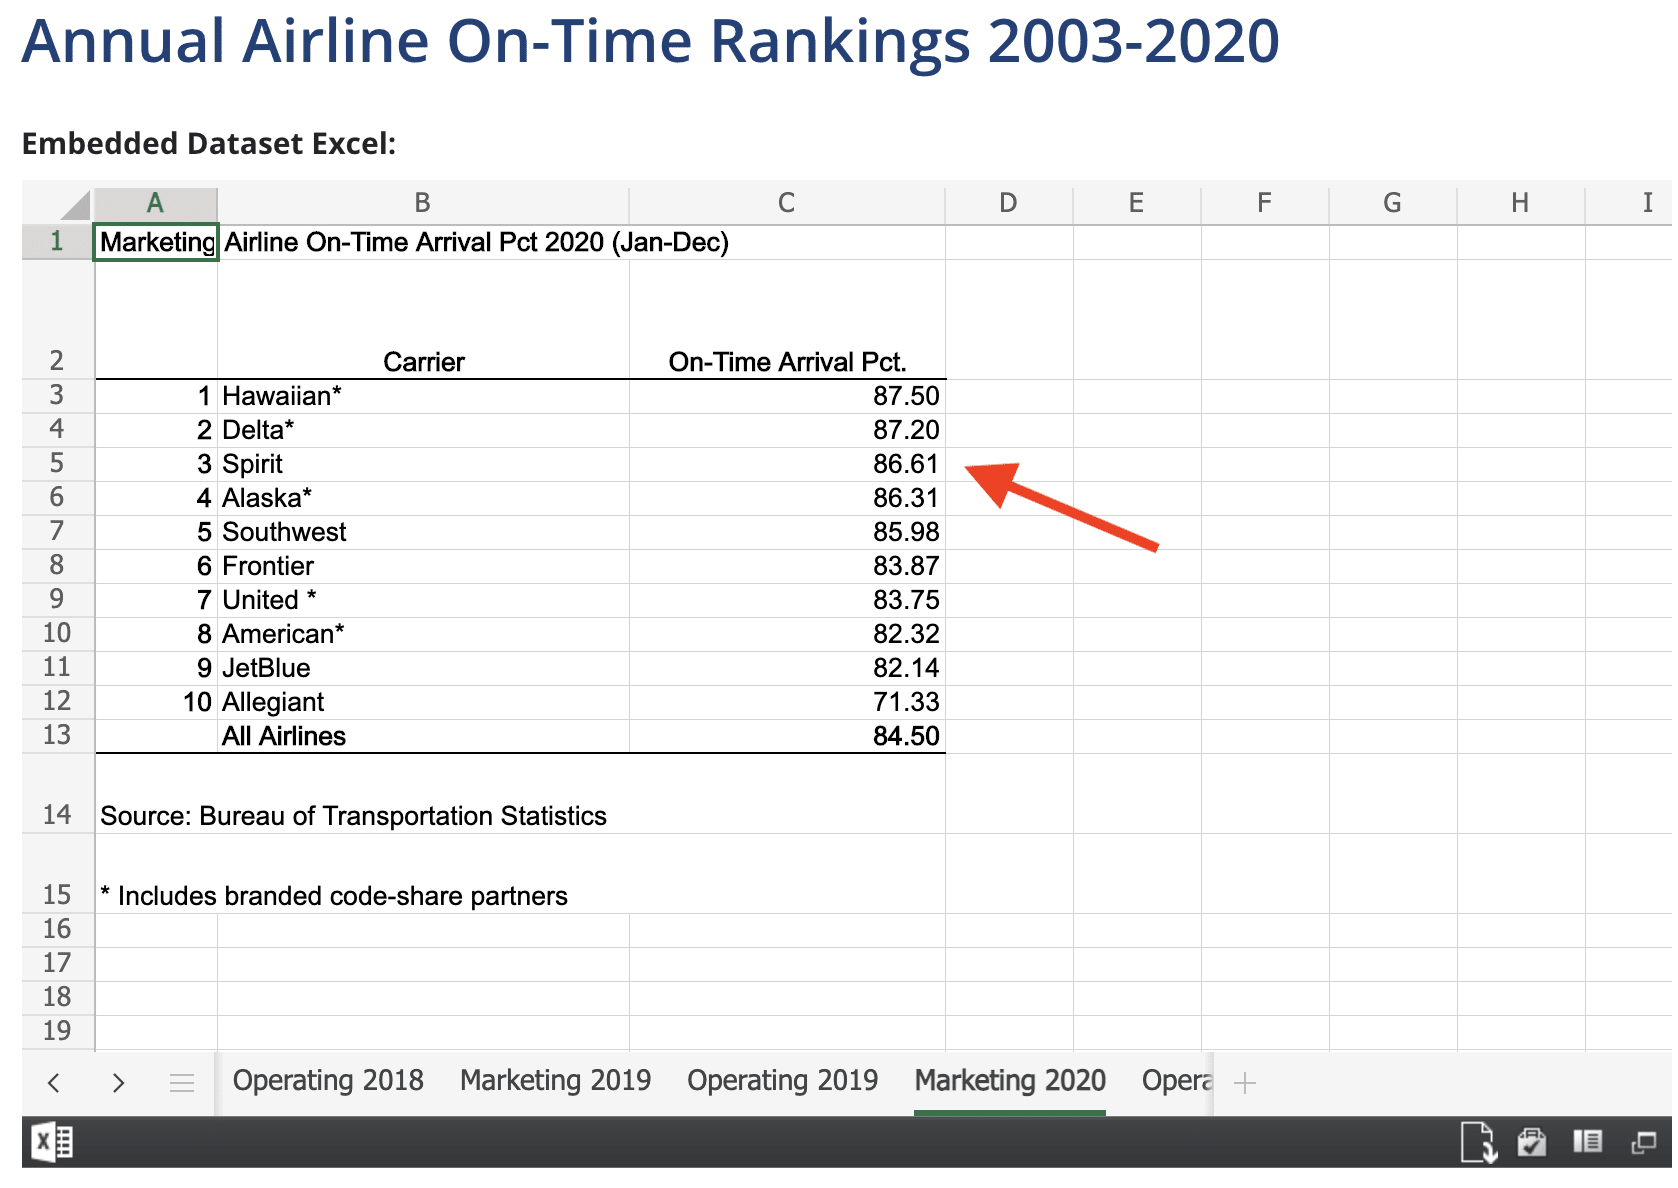 Airline on-time rankings for 2020